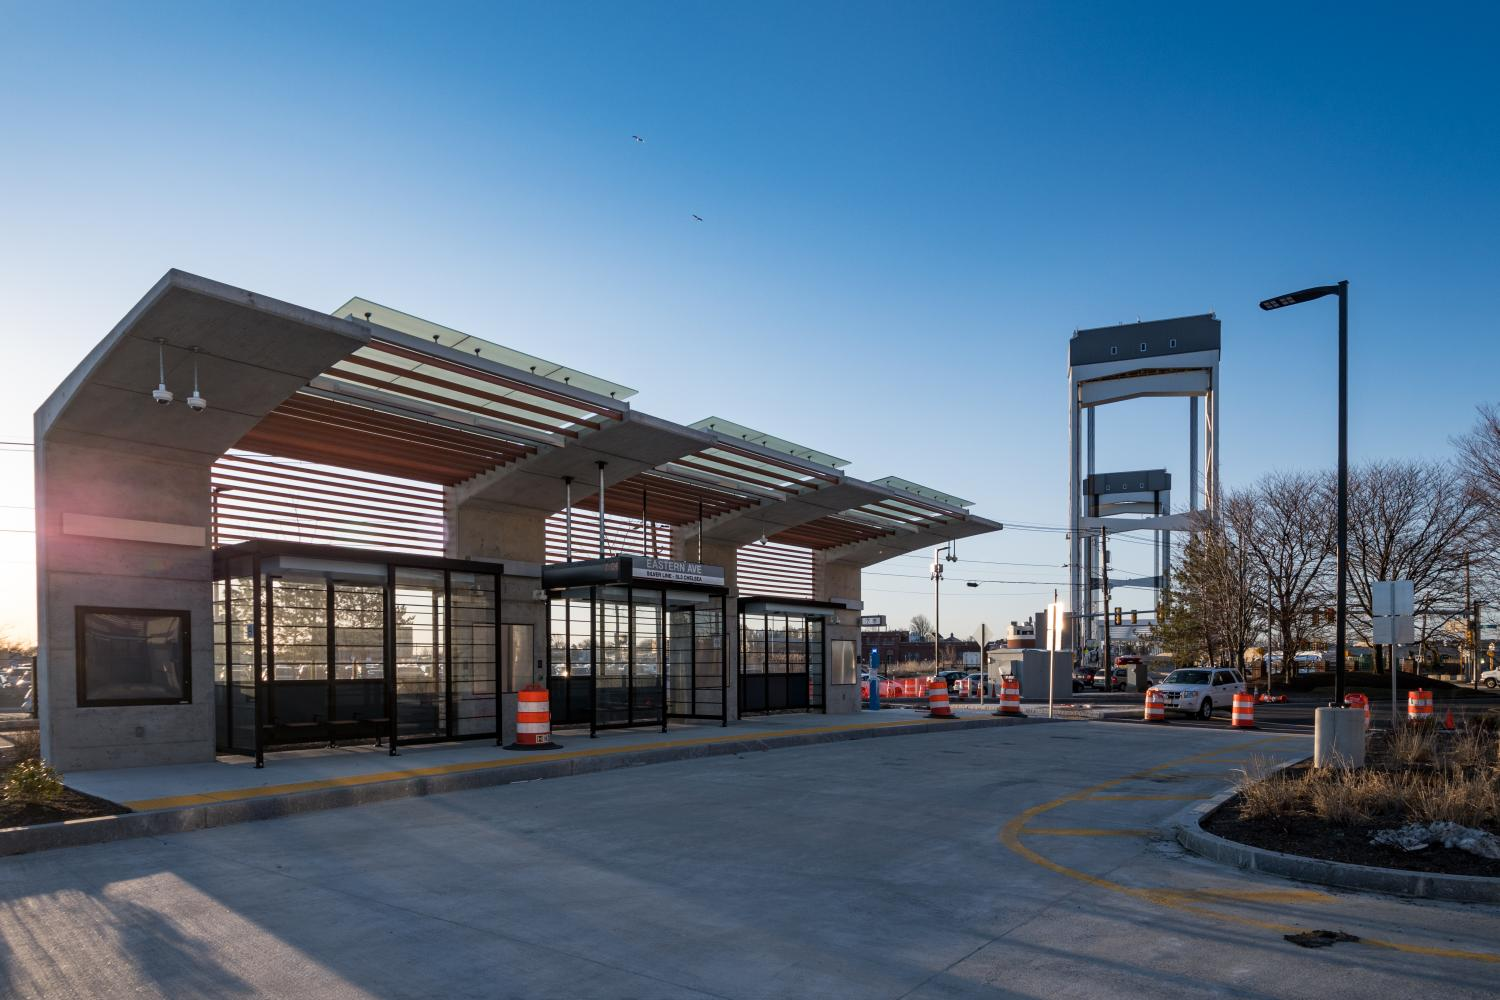 New SL3 station at Eastern Ave in Chelsea, MA